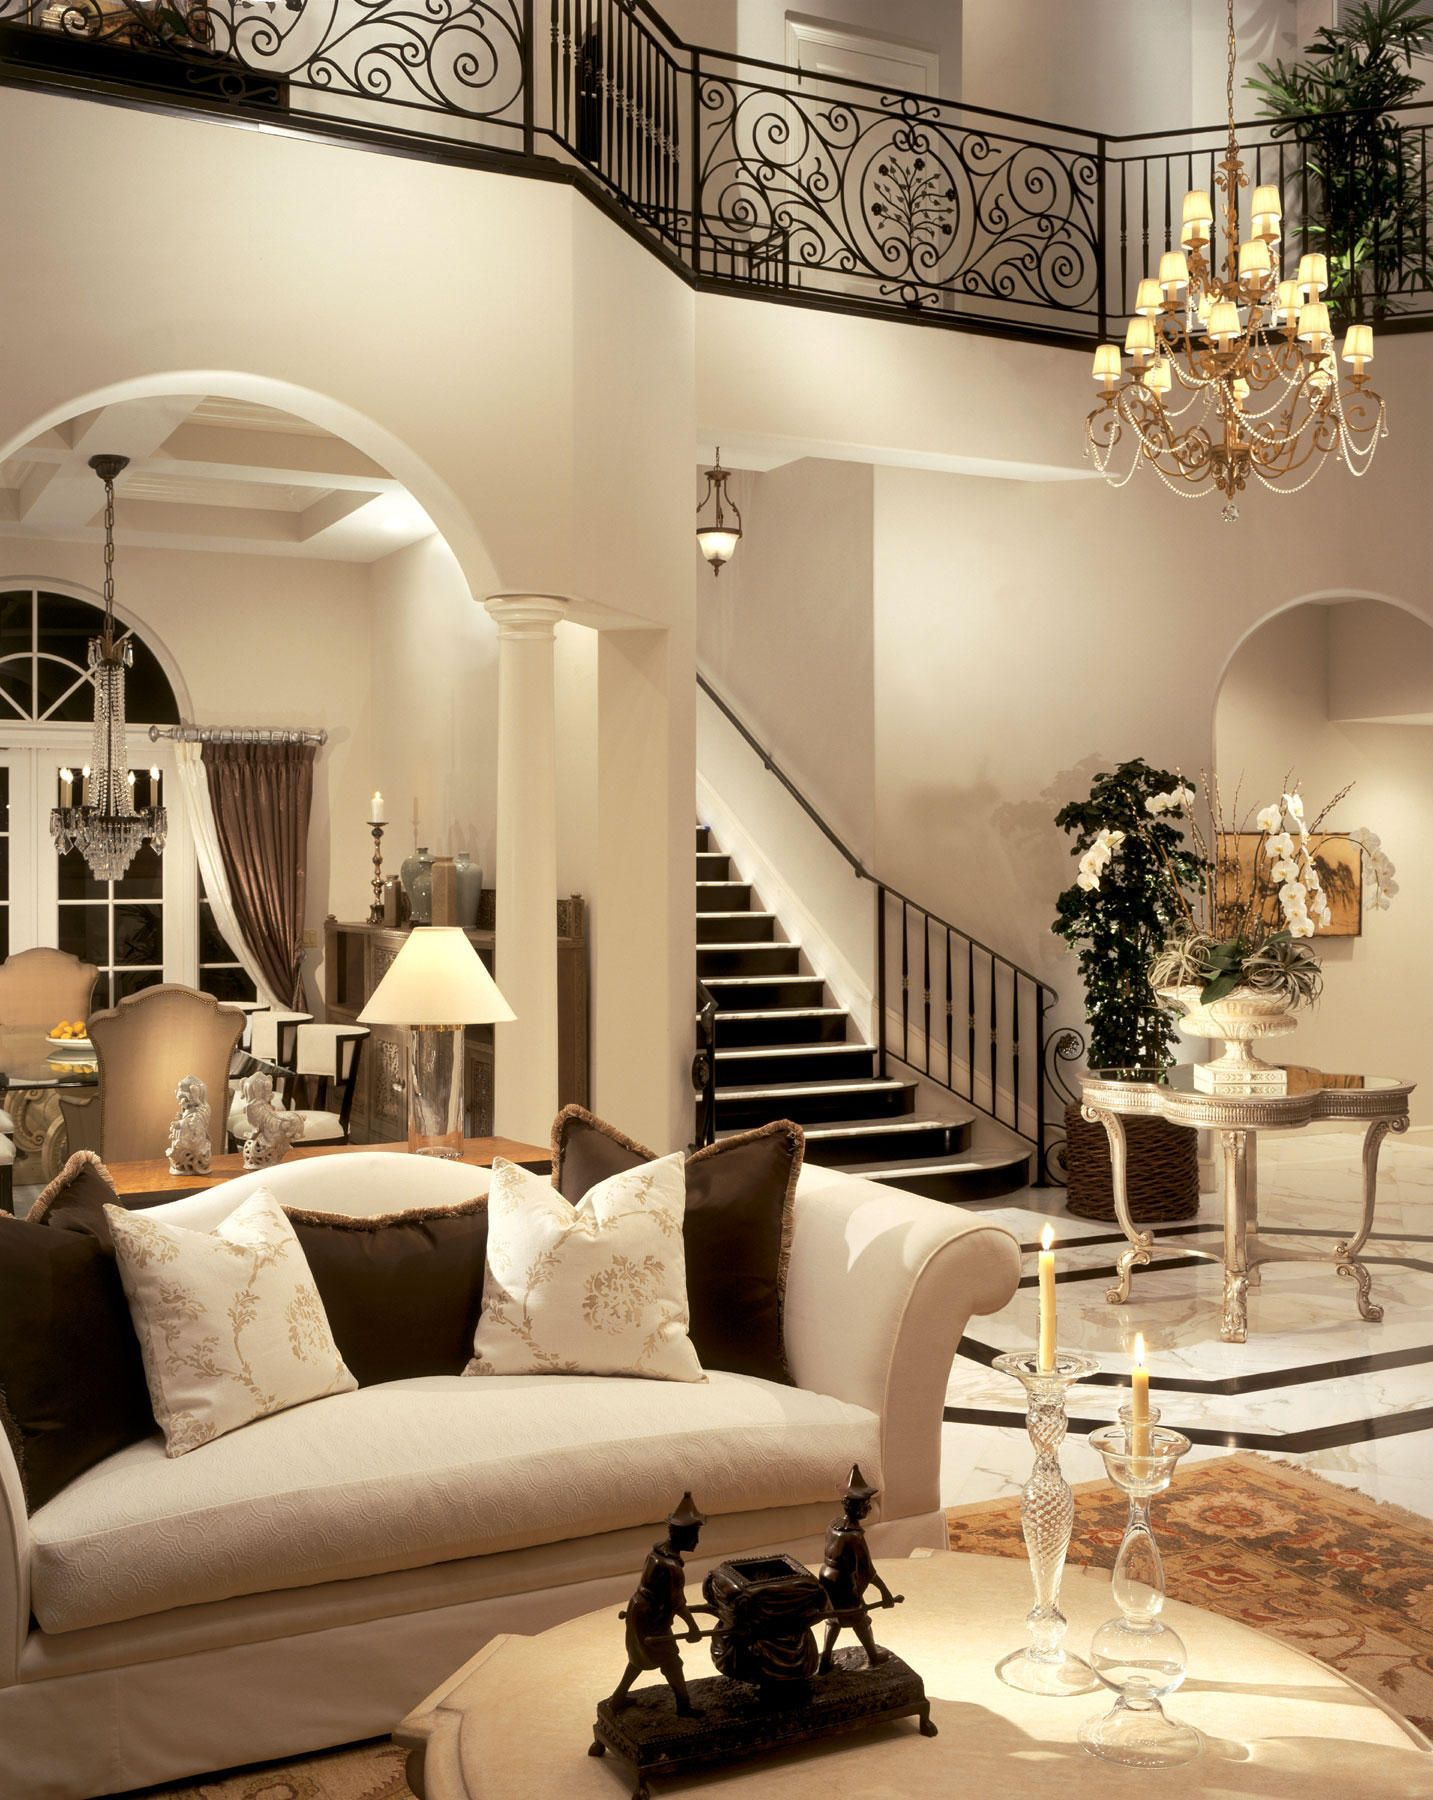 Clic Cream And Black Colors Add Elegance More Fancy Living Rooms Room